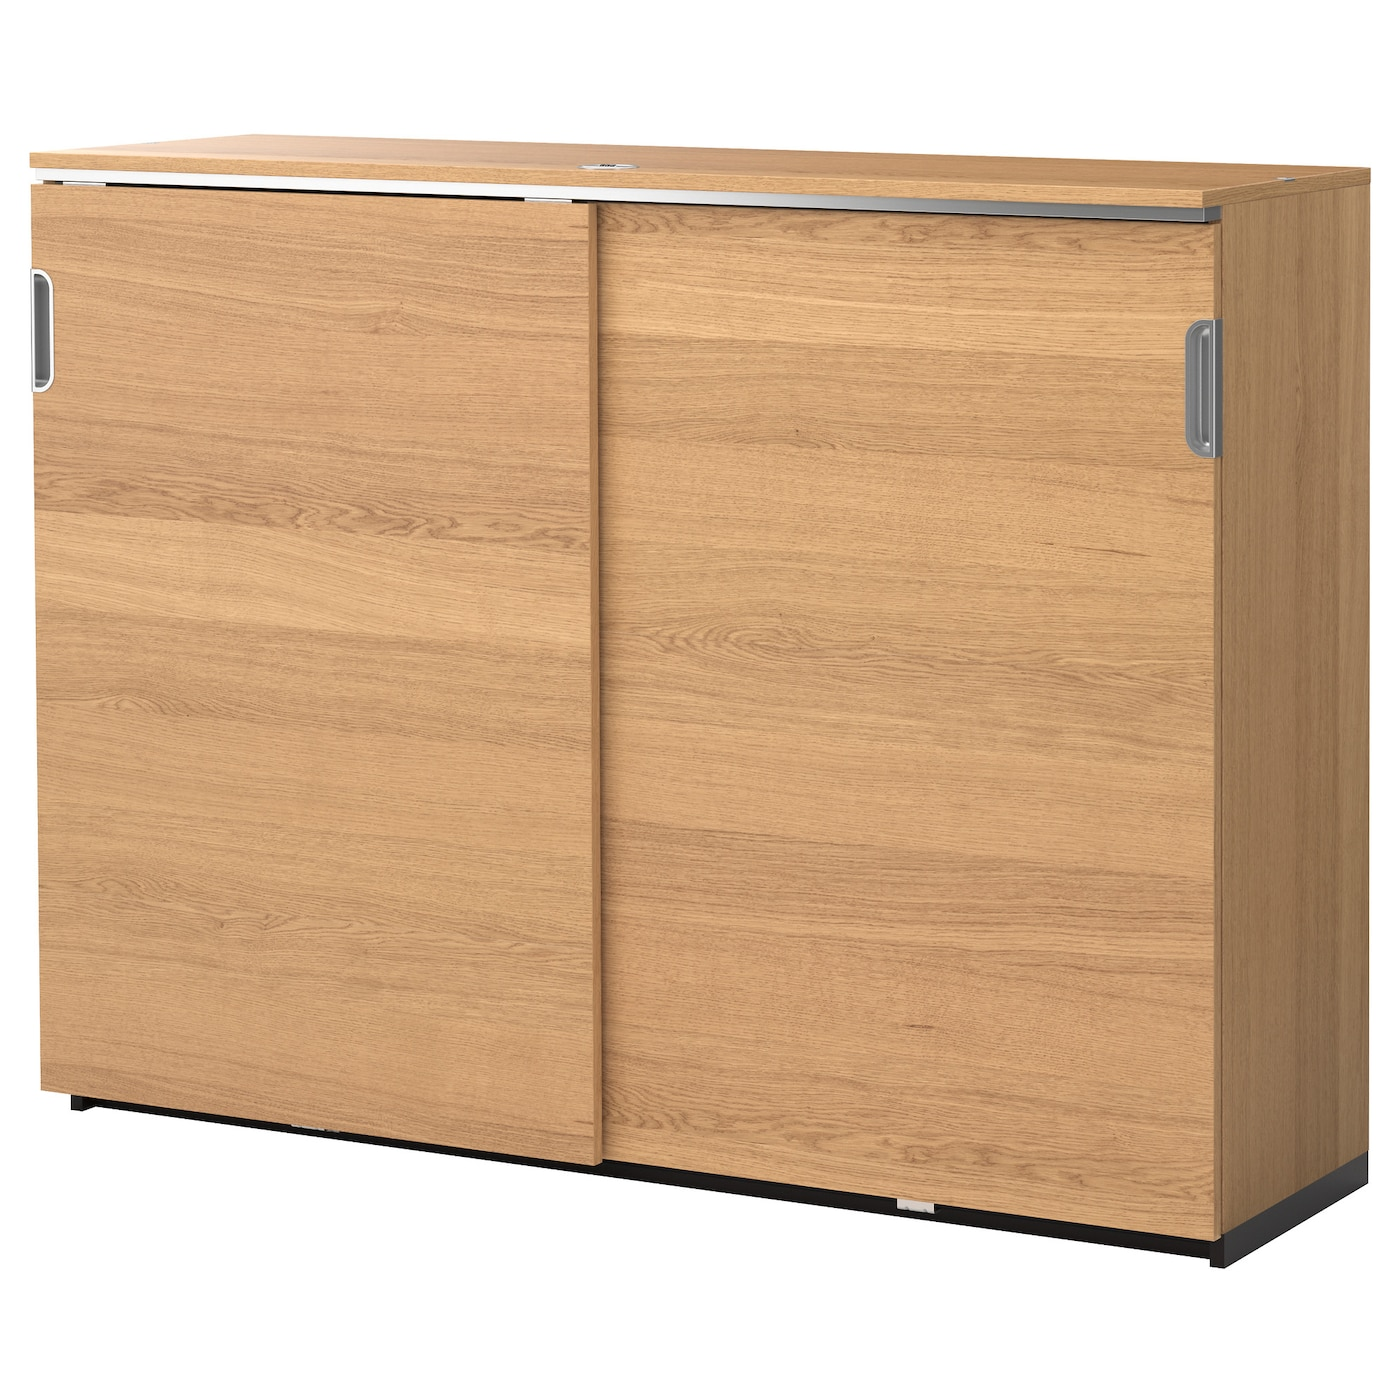 Galant Cabinet With Sliding Doors Oak Veneer 160x120 Cm Ikea